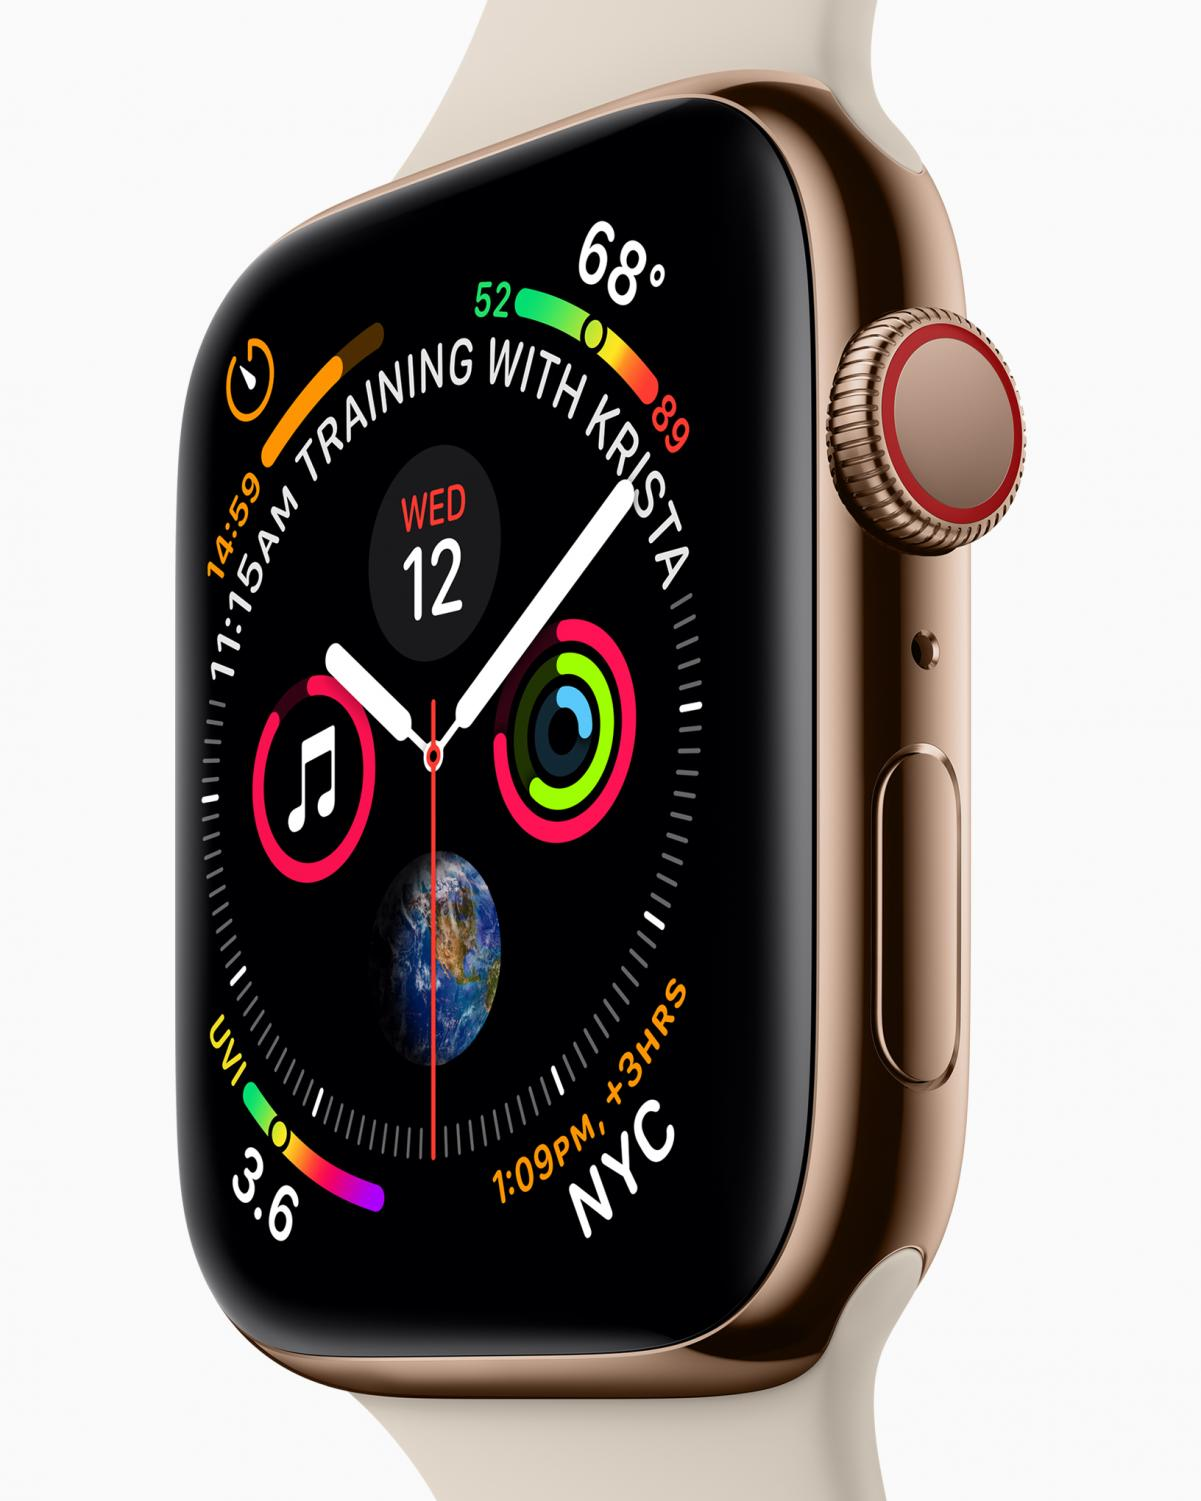 The+new+Apple+Watch+Series+4+was+announced+Wednesday+at+Apple+Park.+They+will+go+on+sale+for+pre-order+starting+September+14.+Photo+courtesy+of+Apple.+All+rights+reserved.